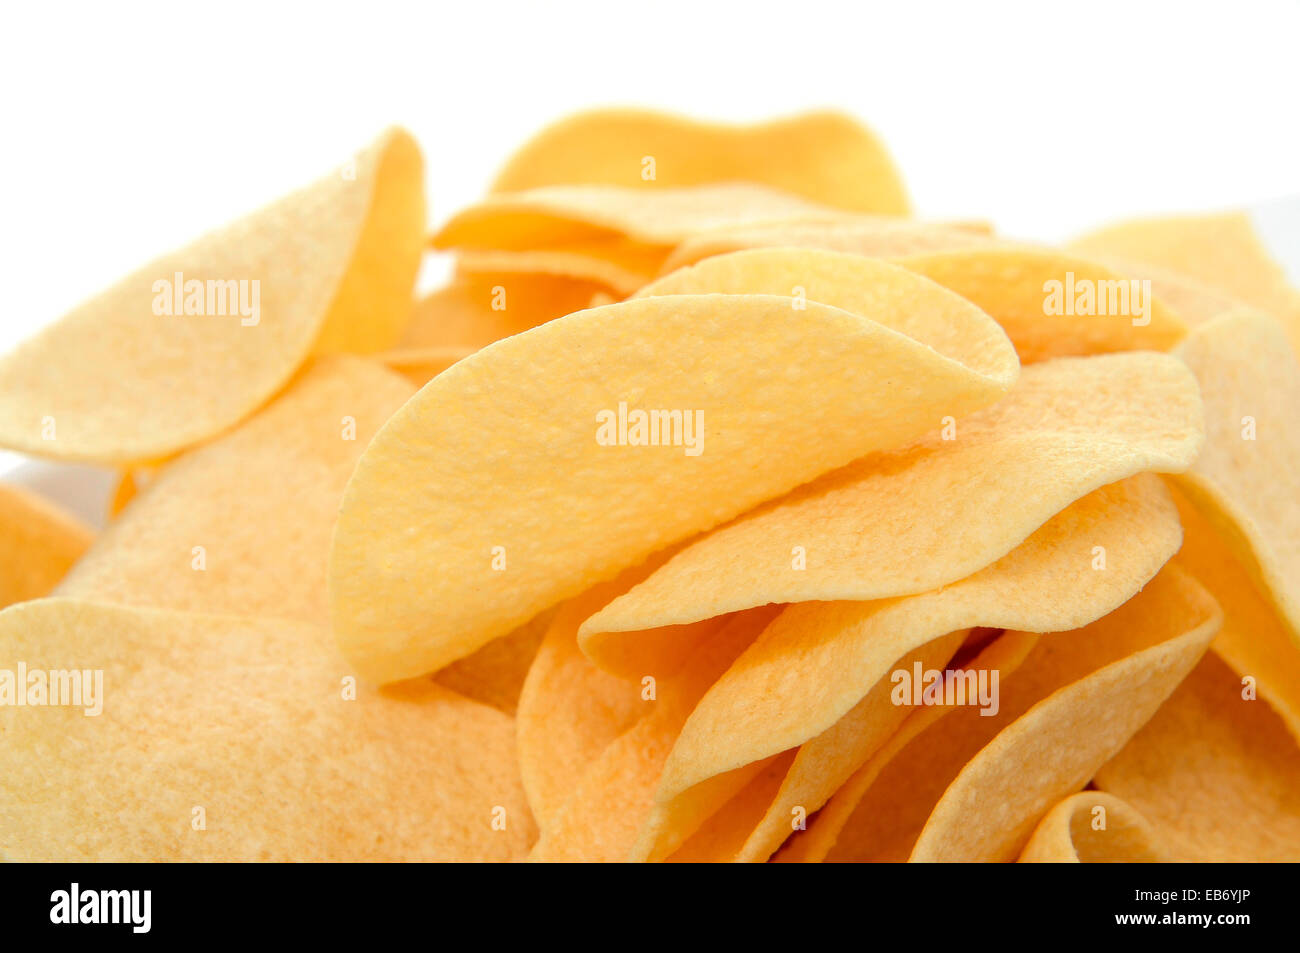 closeup of a pile of low fat potato chips - Stock Image